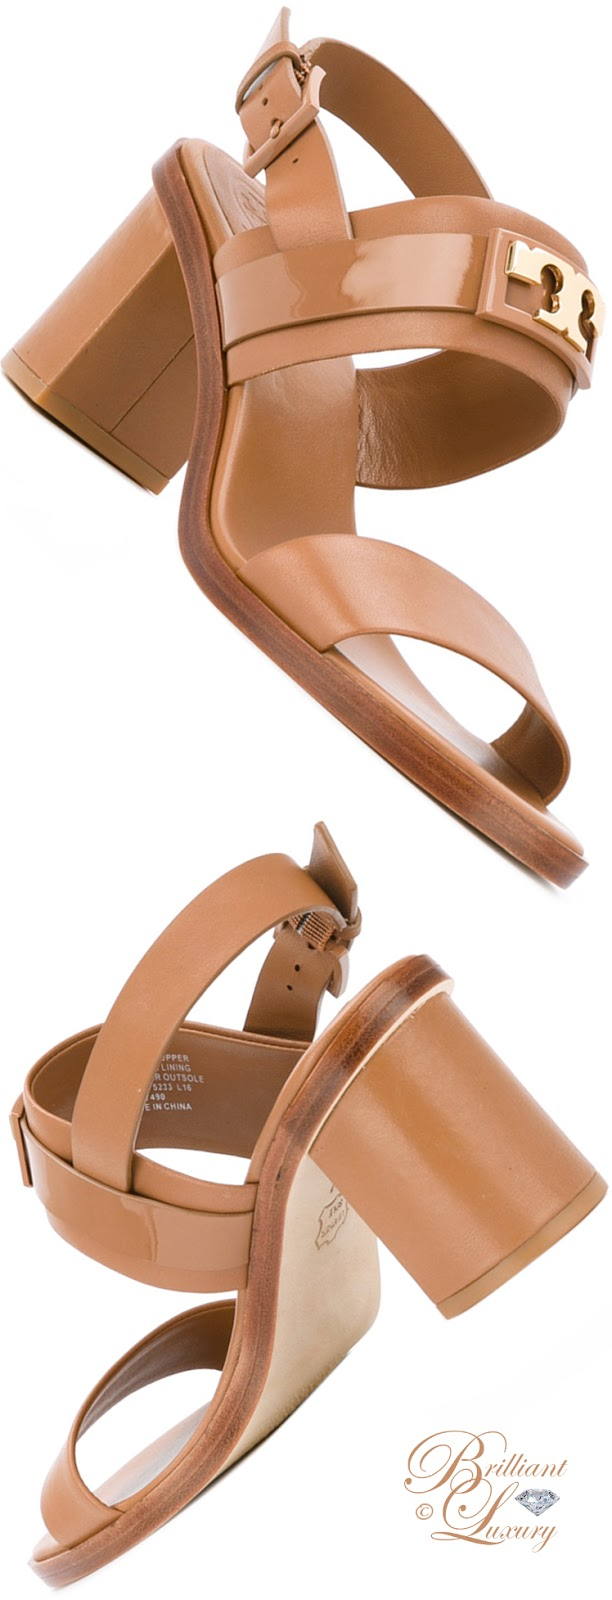 Brilliant Luxury ♦ Tory Burch Chunky Heel Sandals